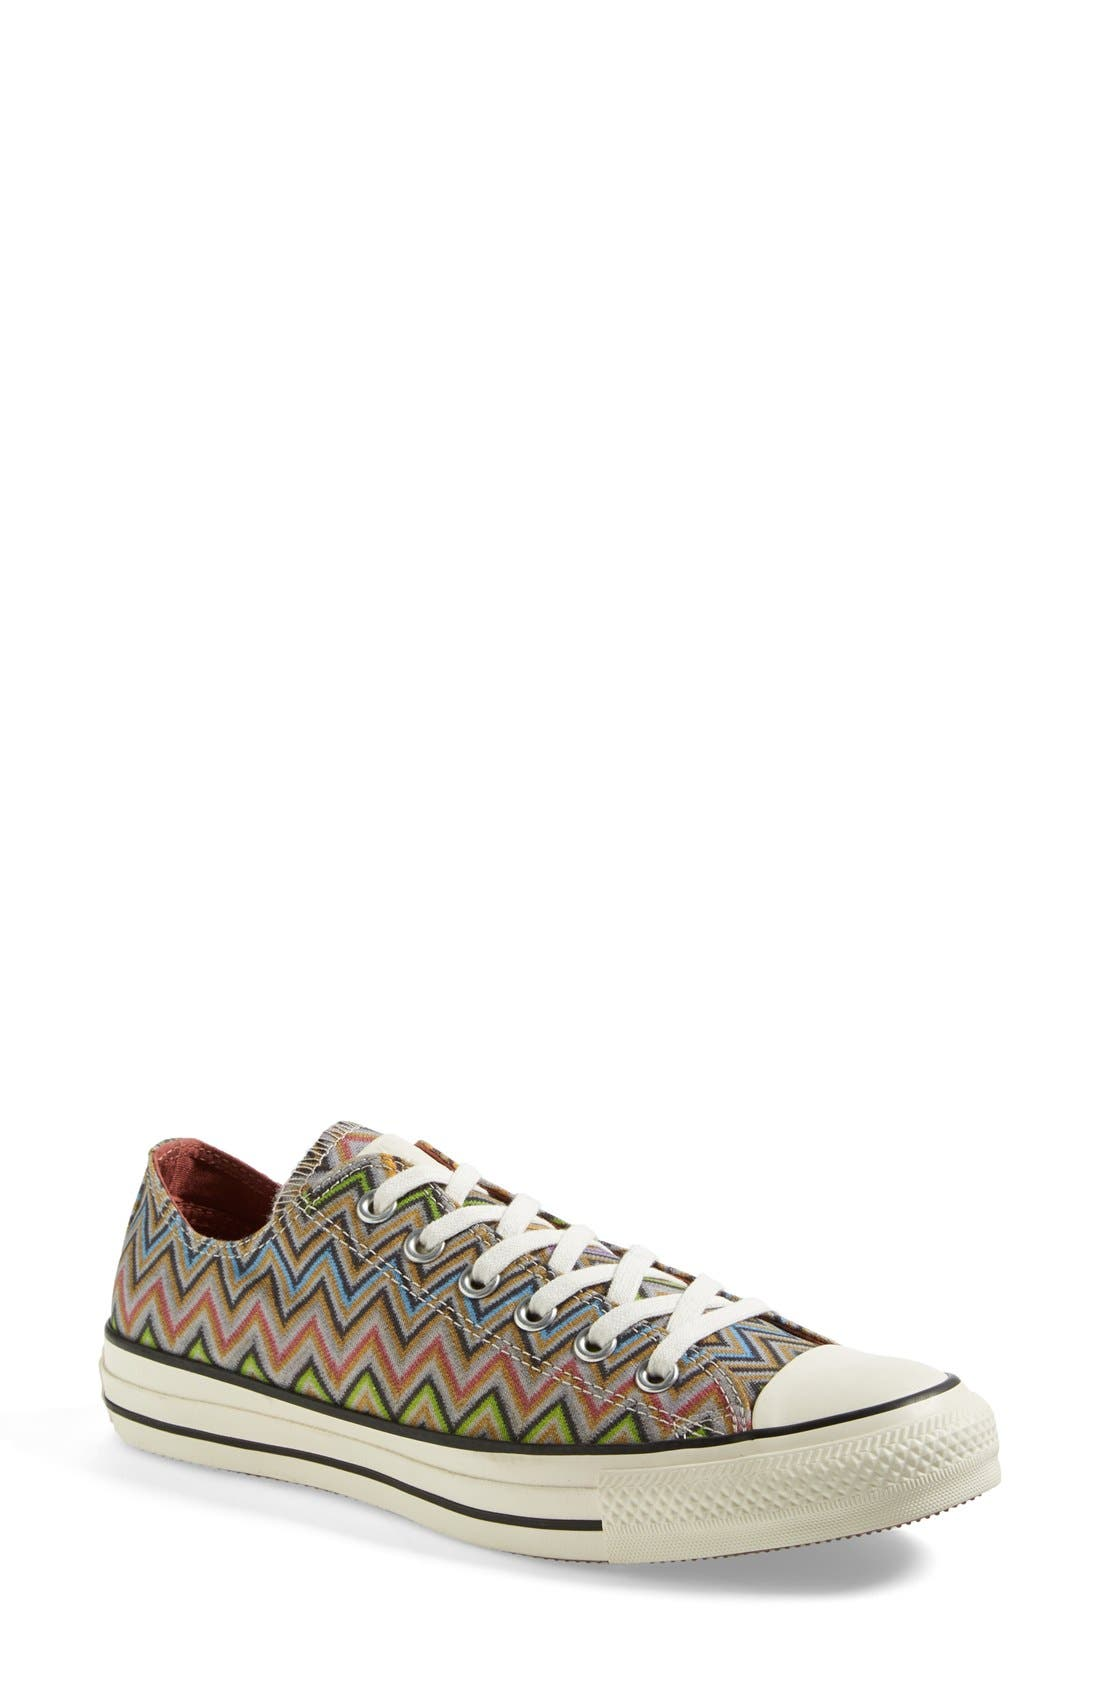 Alternate Image 1 Selected - Converse x Missoni Chuck Taylor® All Star® Low Sneaker (Nordstrom Exclusive Color)(Women)